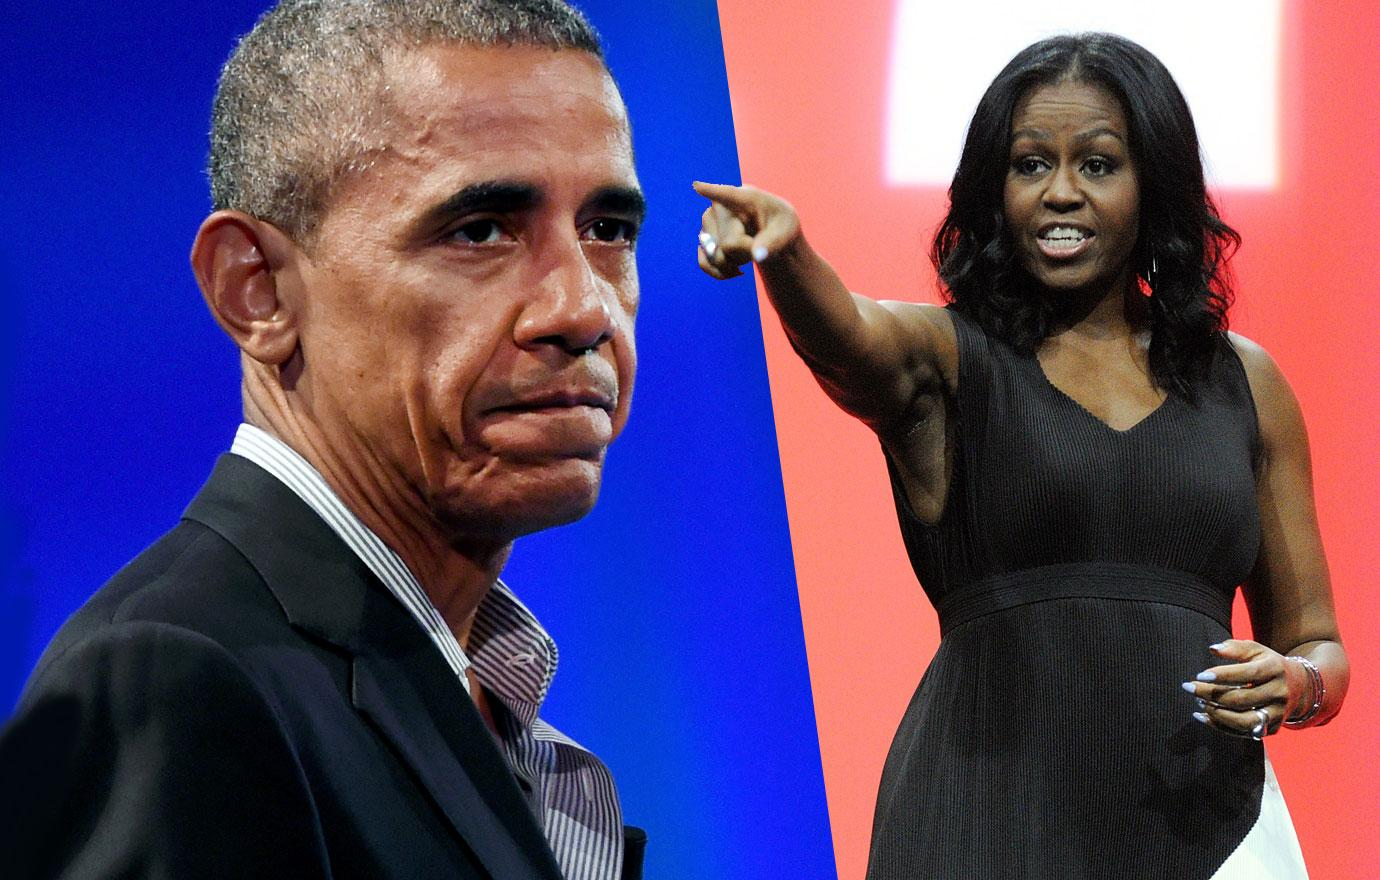 Barack Obama Wife Michelle Was The Boss Says Former Aide